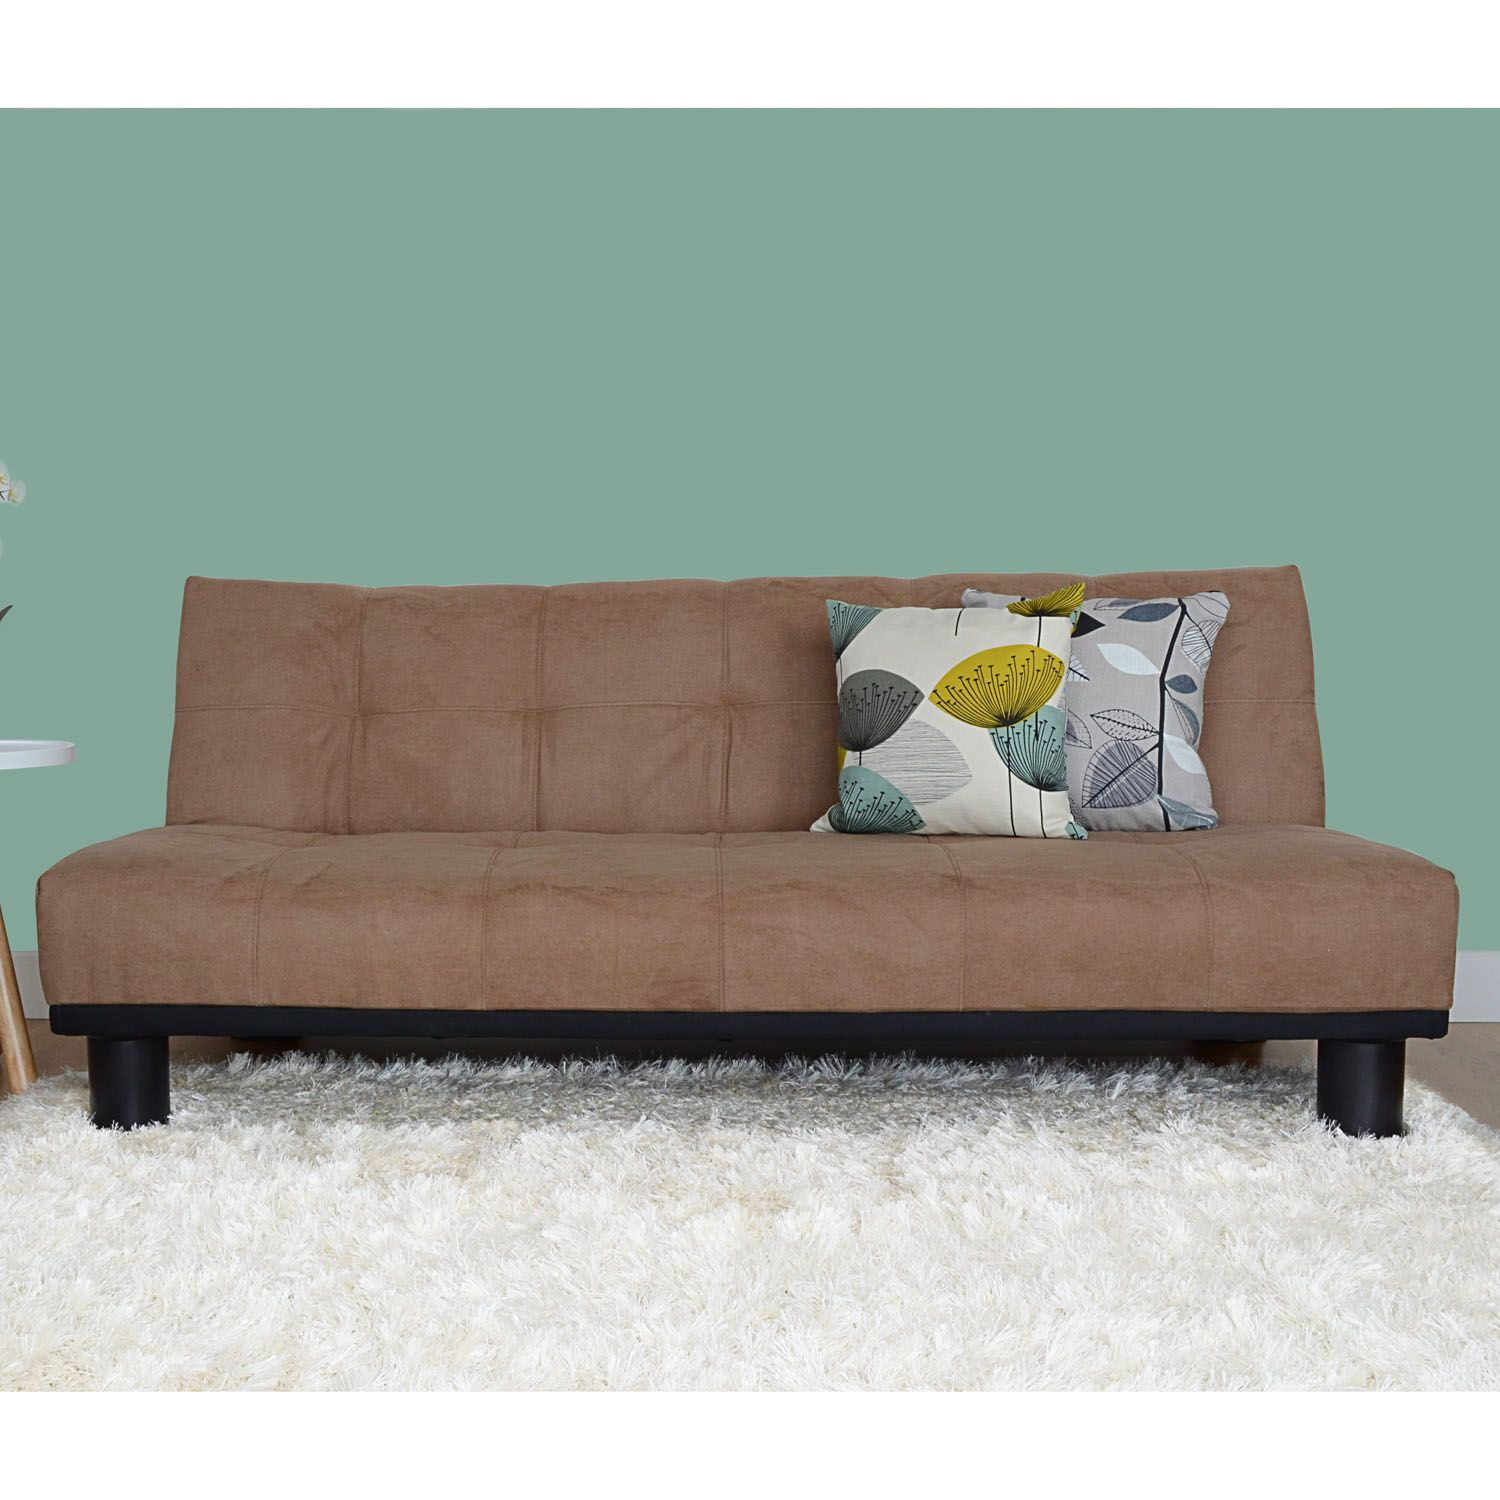 Super Bella Mocha Brown Faux Suede Sofa Bed 185 Small Home Download Free Architecture Designs Scobabritishbridgeorg